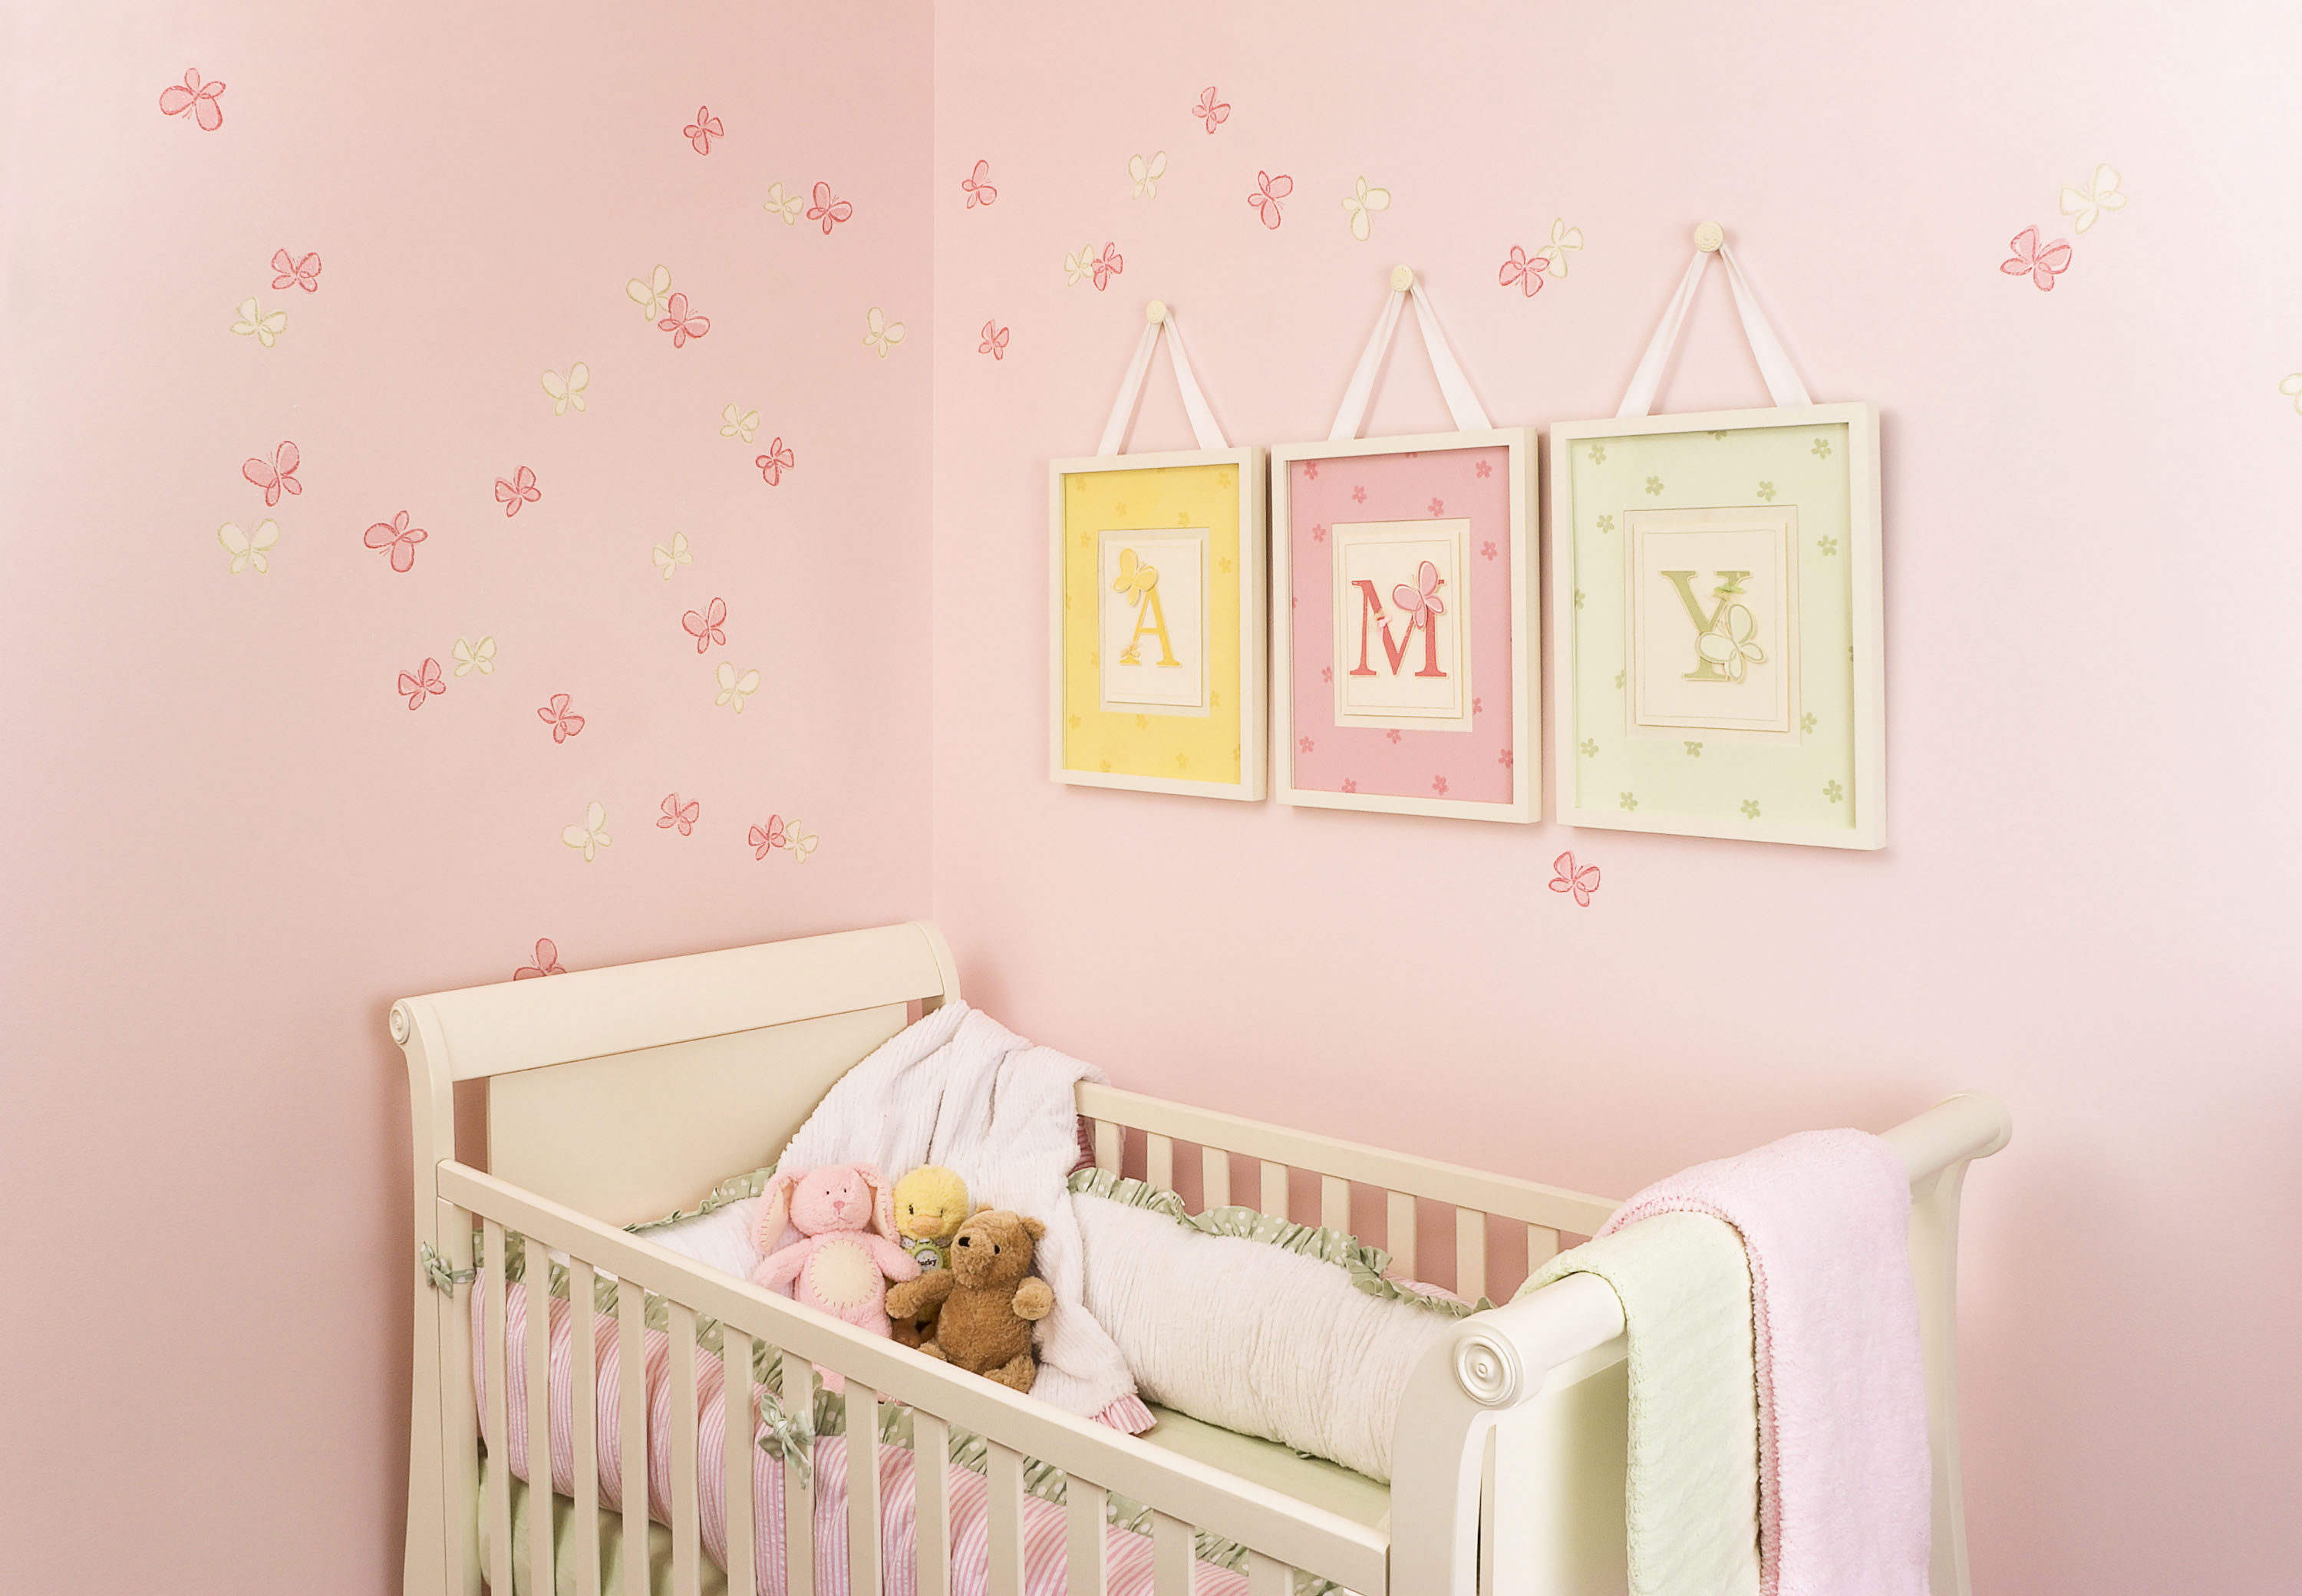 In The Butterfly Baby Room Is Available For Purchase At This Time